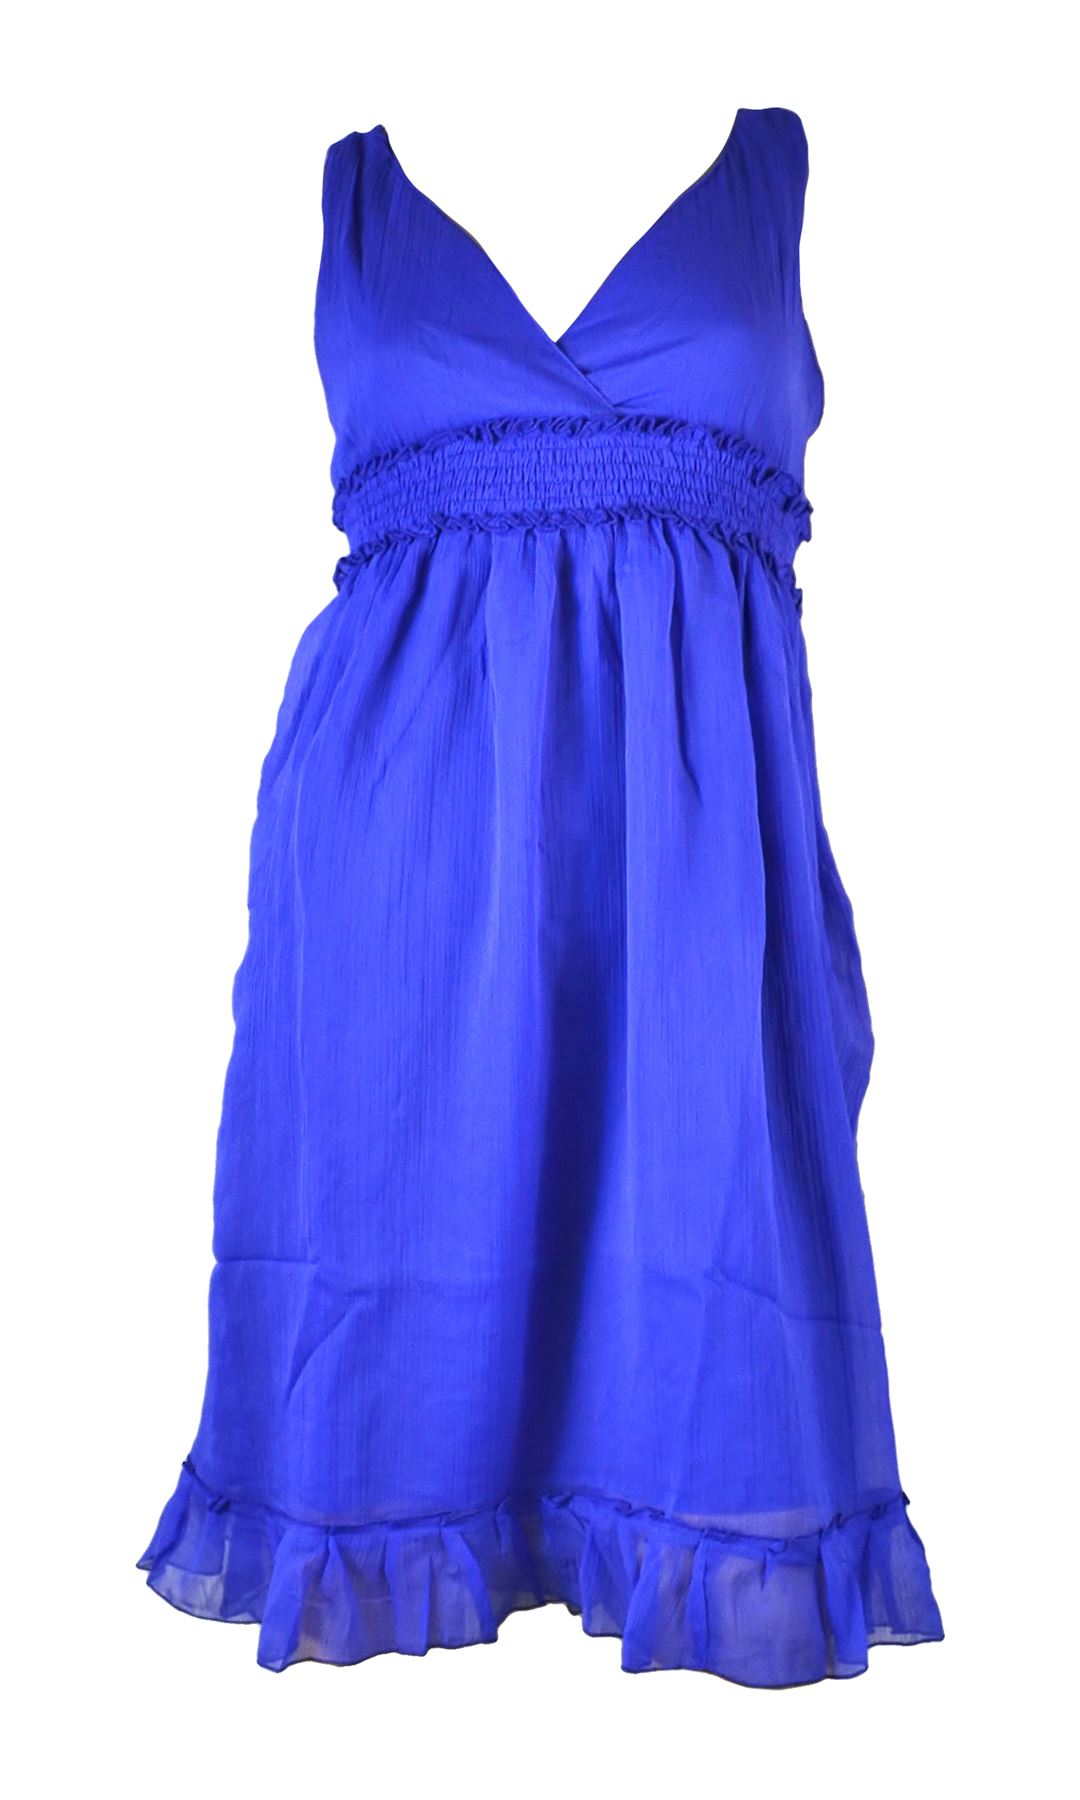 Belle Donne- Women's Tie Dye Maxi Summer Dress Summer Nights Maxi Dress - Blue